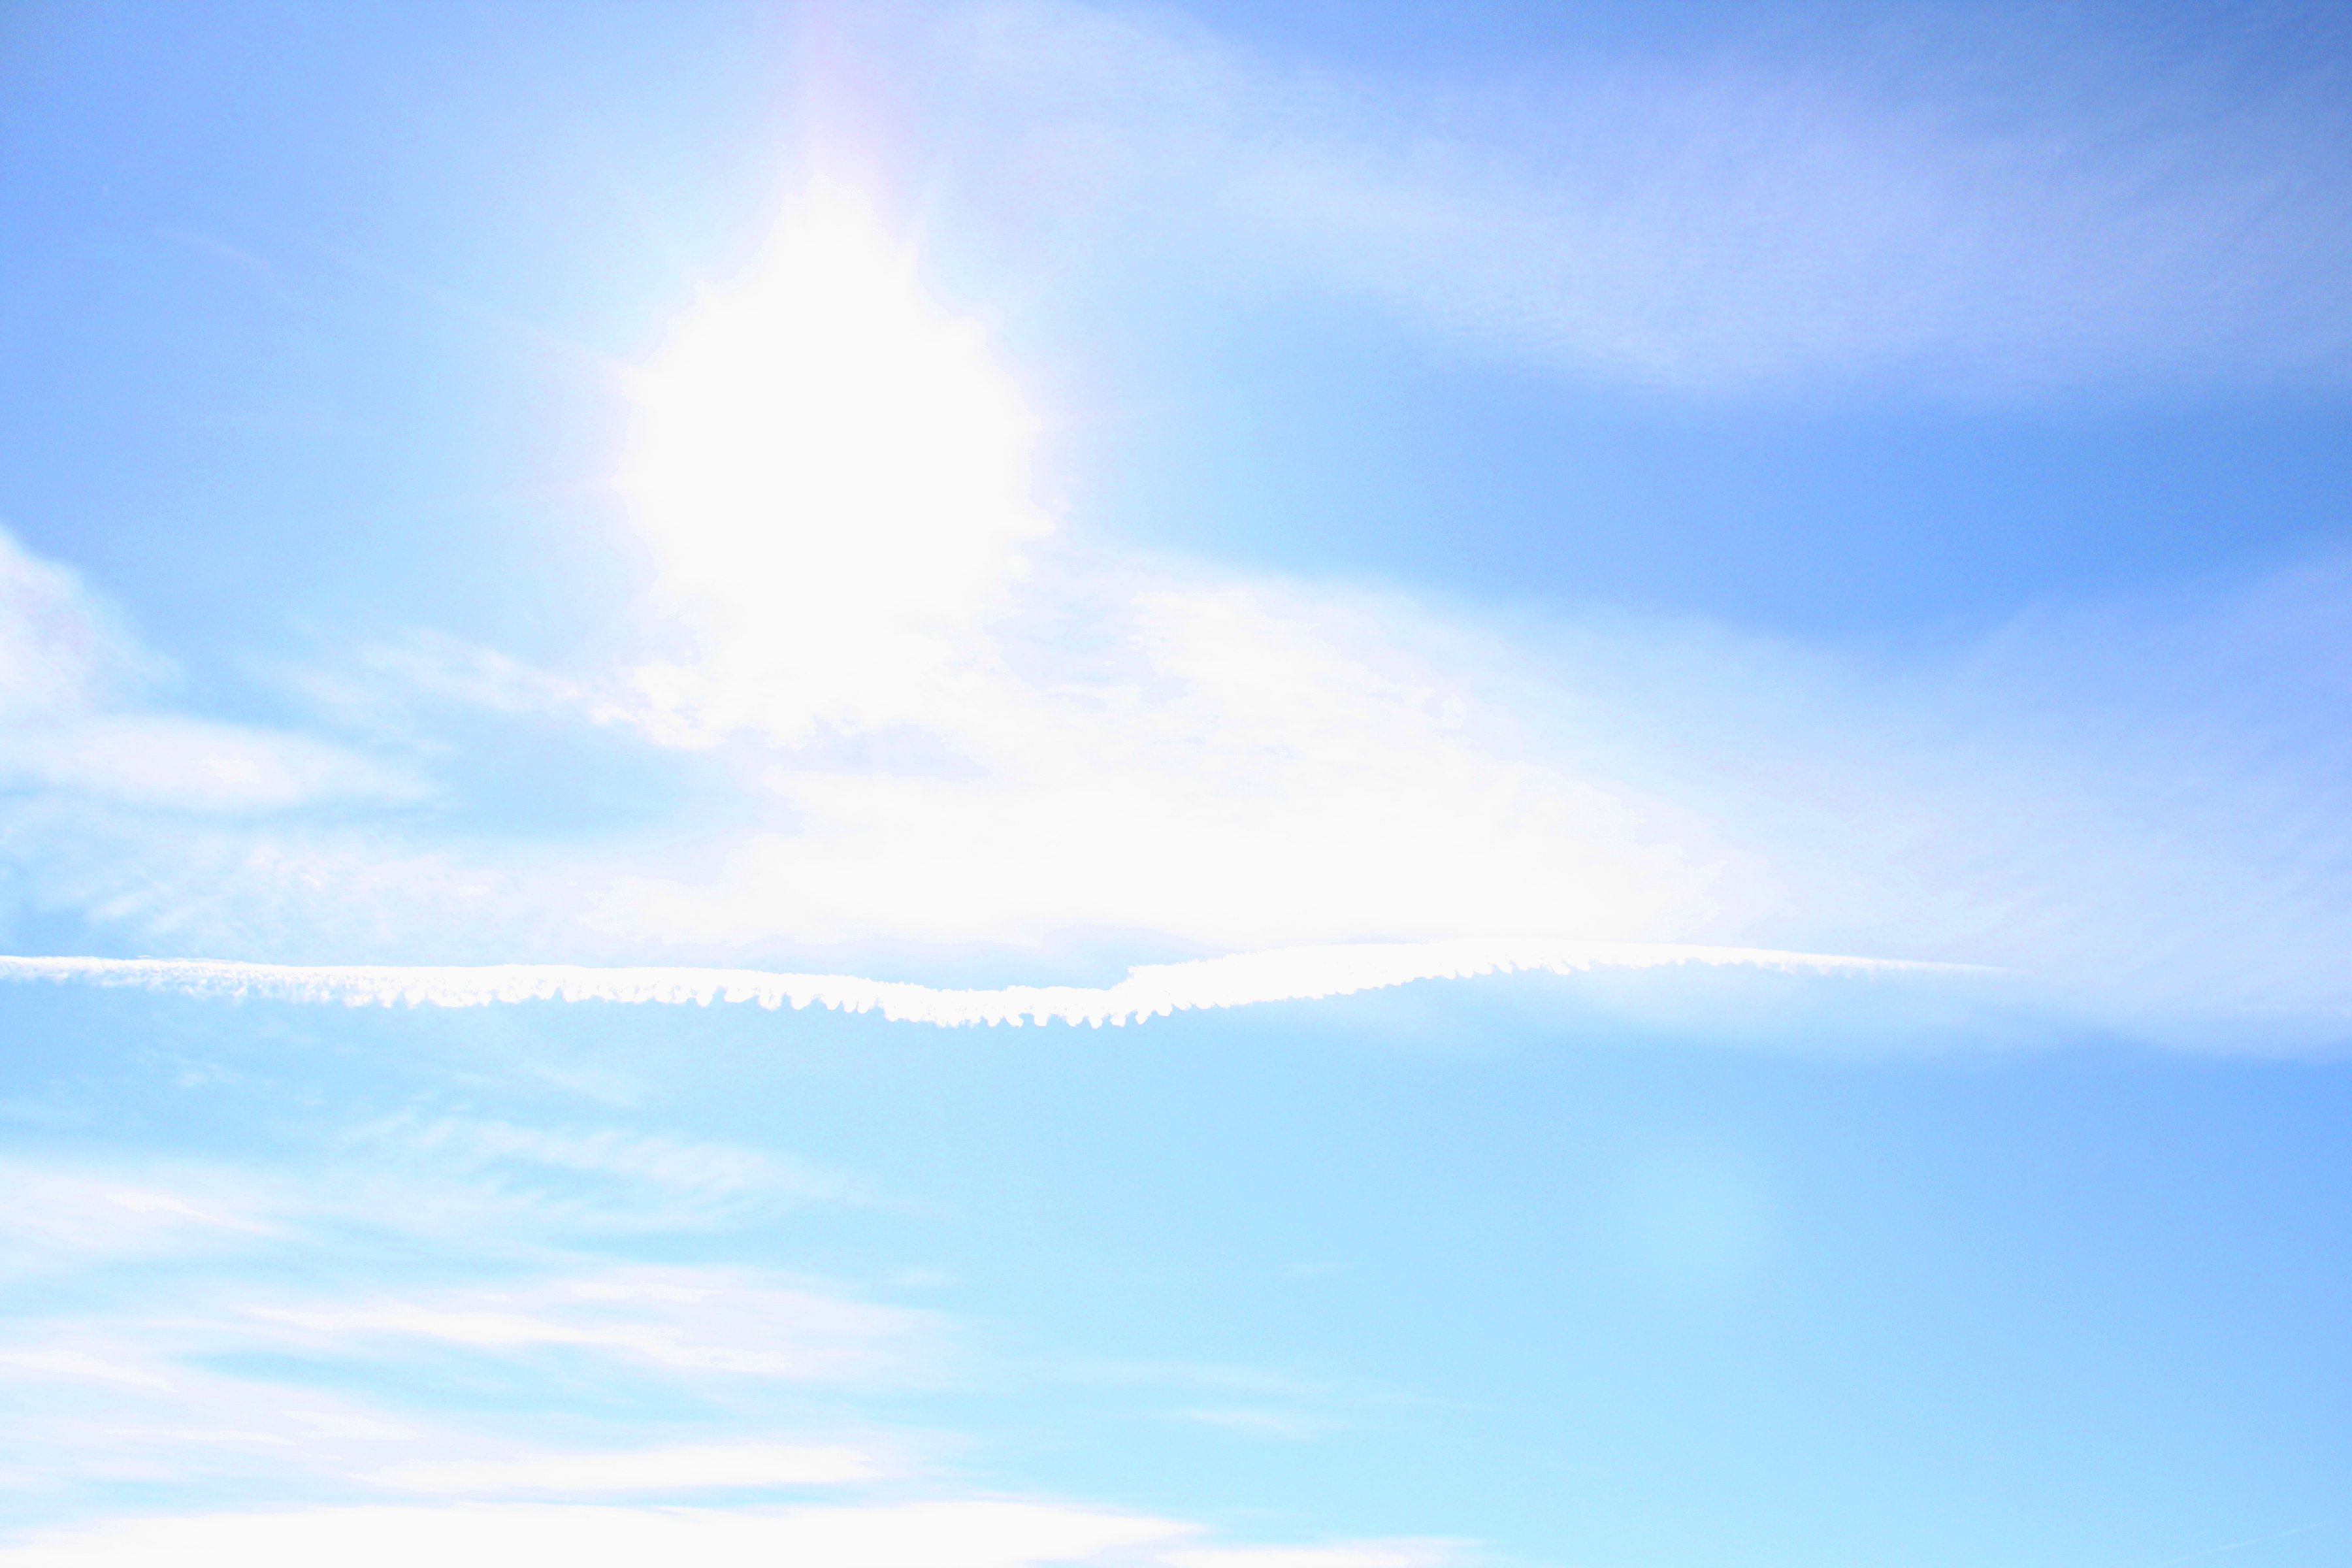 Blue Sky With Sun Clouds And Airplane Trail Picture   Free Photograph